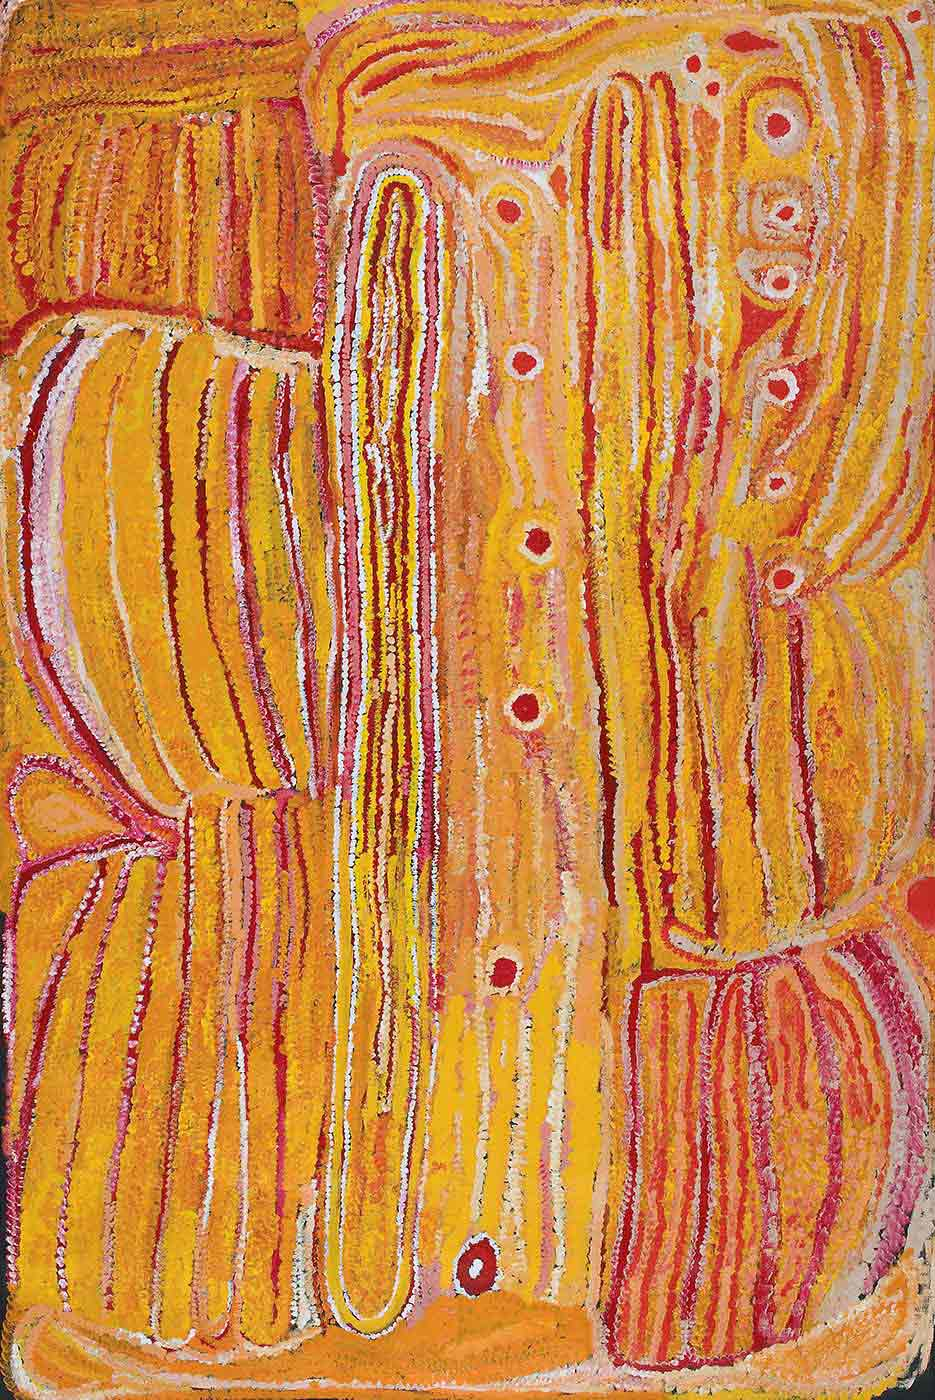 A yellow toned textured painting on brown linen with a vertical line of six small red-pink circles down the centre. Most of the painting has vertical uneven stripes in yellow with pink, dark pink and white thin lines between. The right side has a shorter line of six red circles at the top and a rectangular shape at the bottom corner with pink and orange uneven vertical stripes and a red circle above it. In the middle section next to the line of red circles is a long round ended concentric line with rows of red, yellow, white and pink inside. On the left side there is a vertical line of four joined outlined shapes with uneven stripes in them in yellow with pink, white and orange thinner lines. At the bottom edge is an apricot coloured section. - click to view larger image